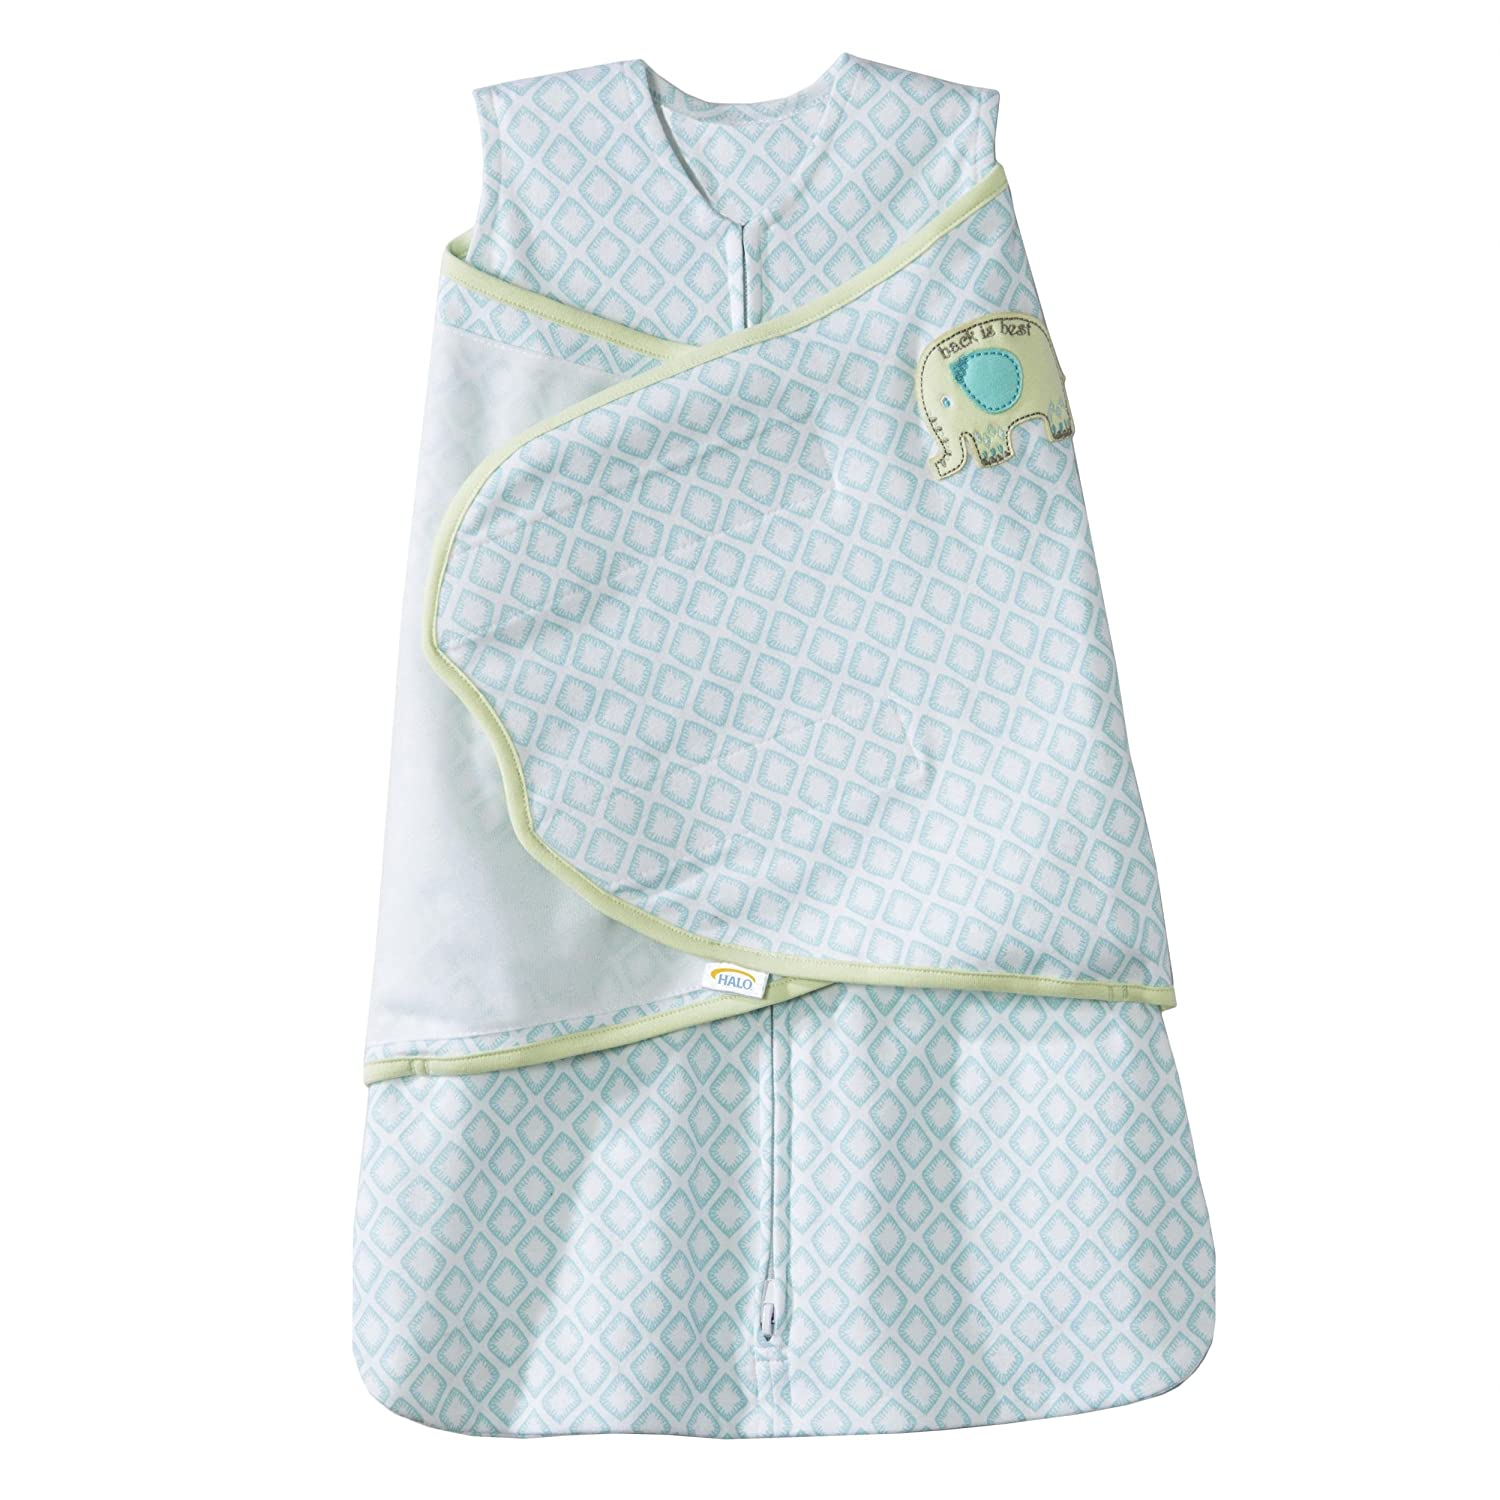 Halo Innovations SleepSack Swaddle Cotton Diamond, Turquoise, Small 3412